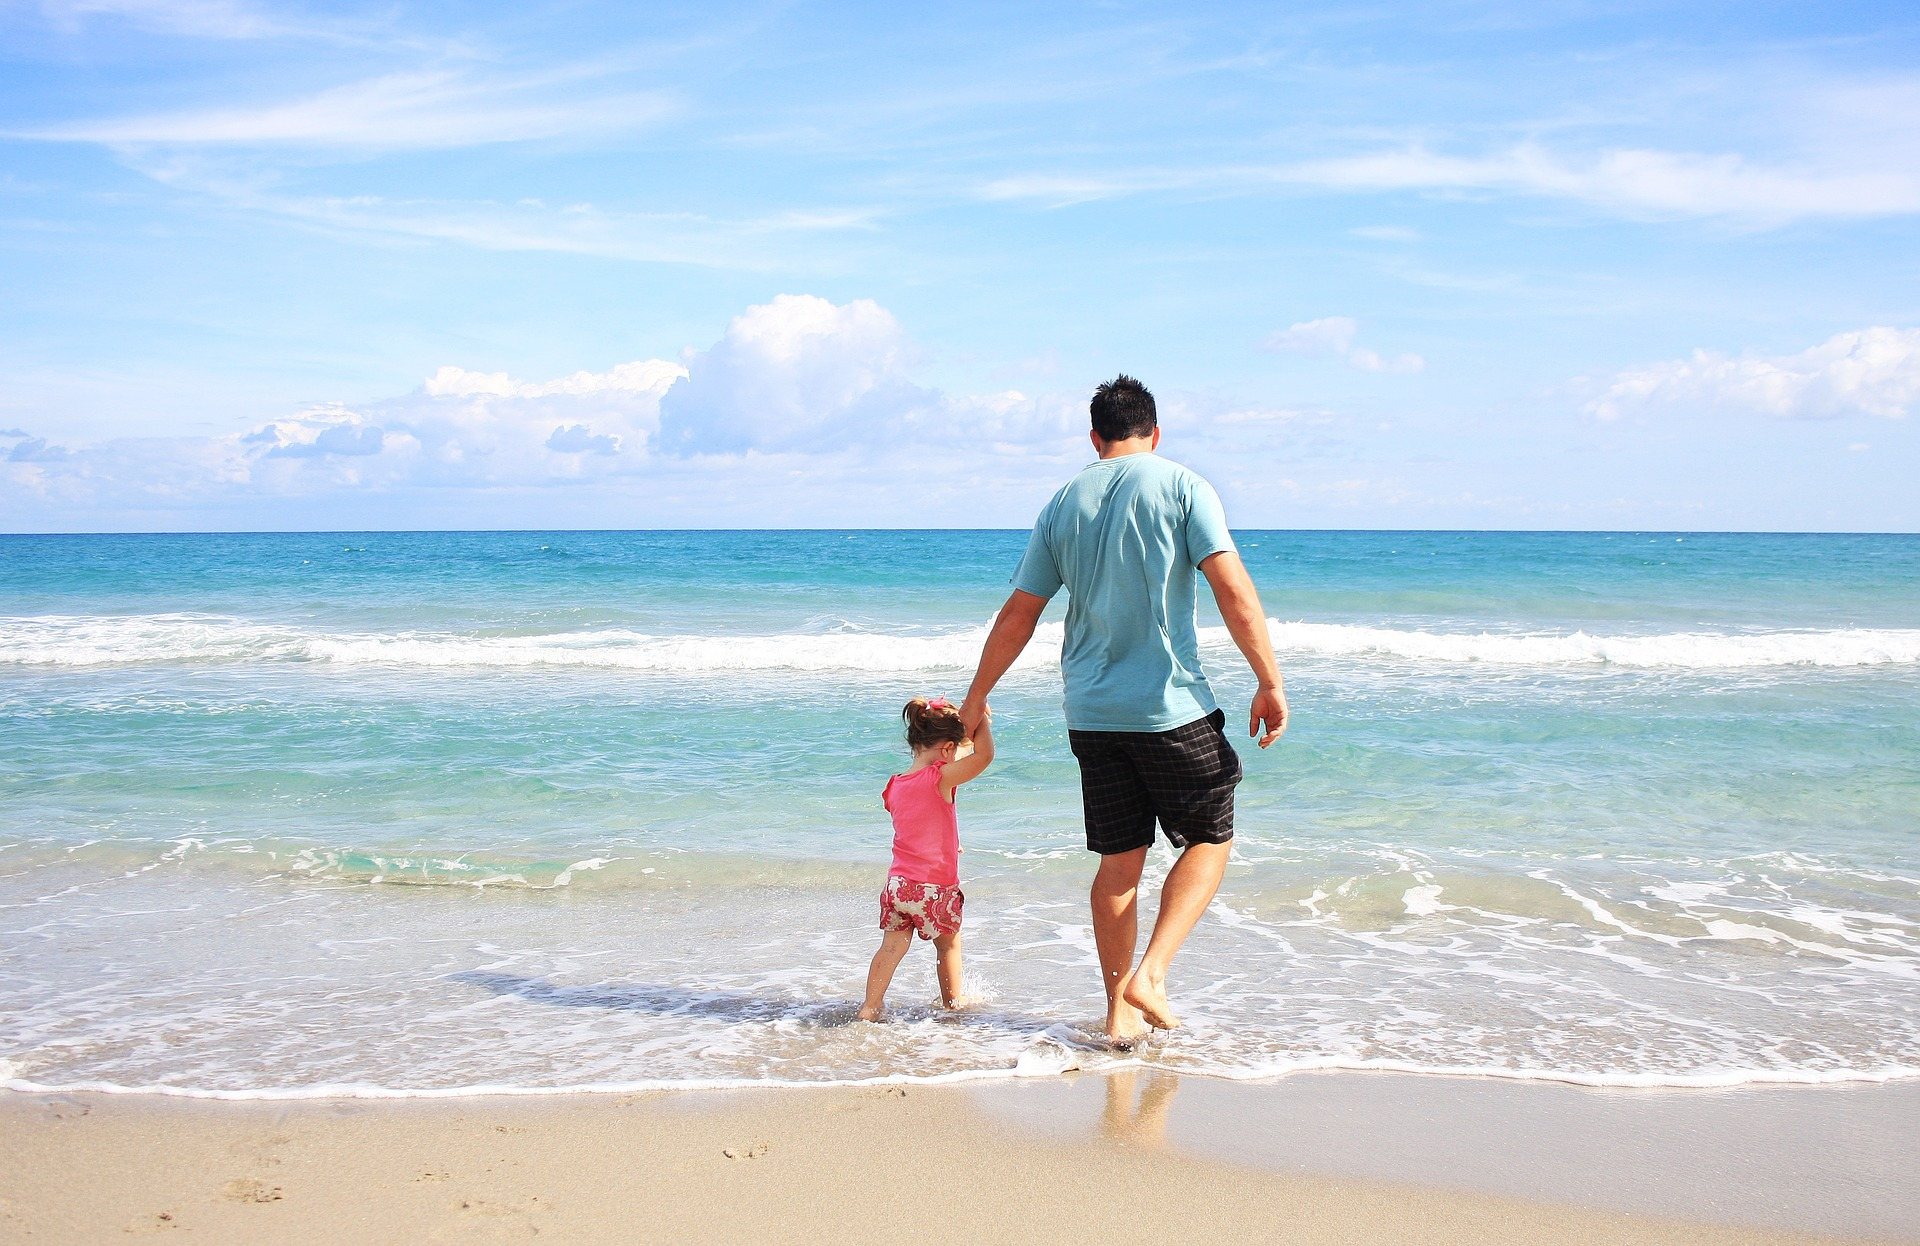 photo of father and daughter at beach